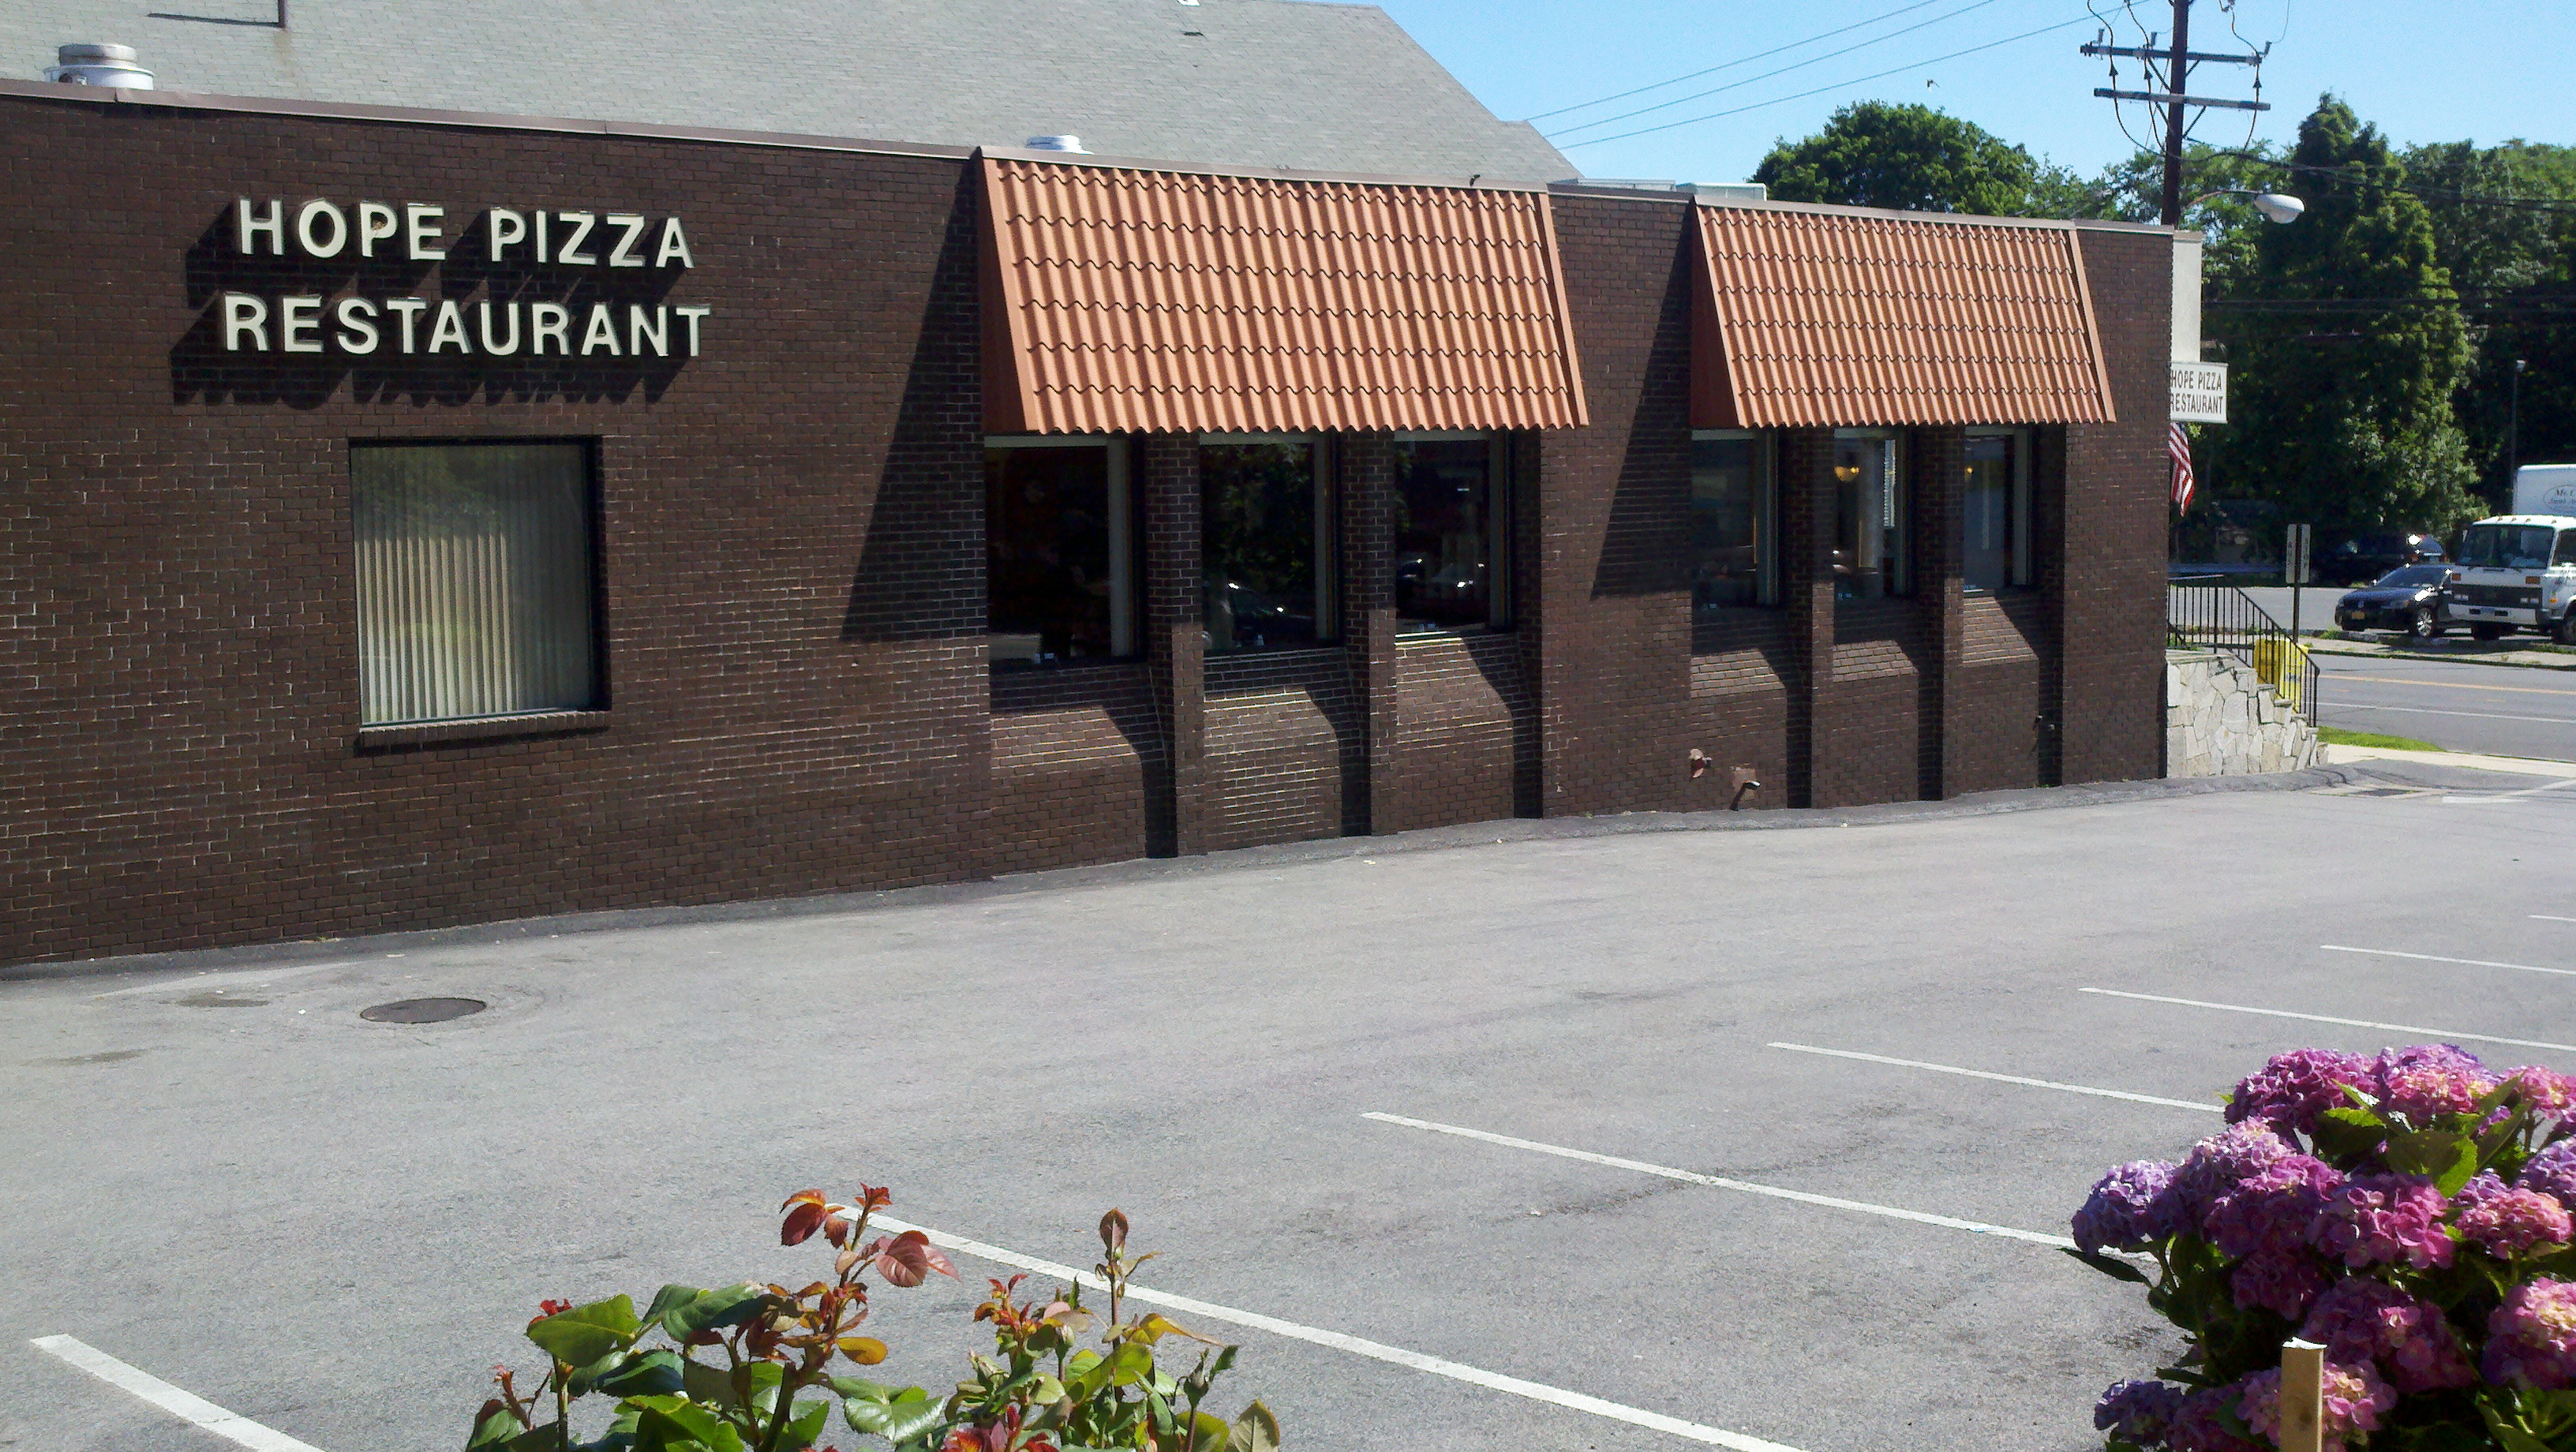 Outside view of Hope Pizza Restaurant||||